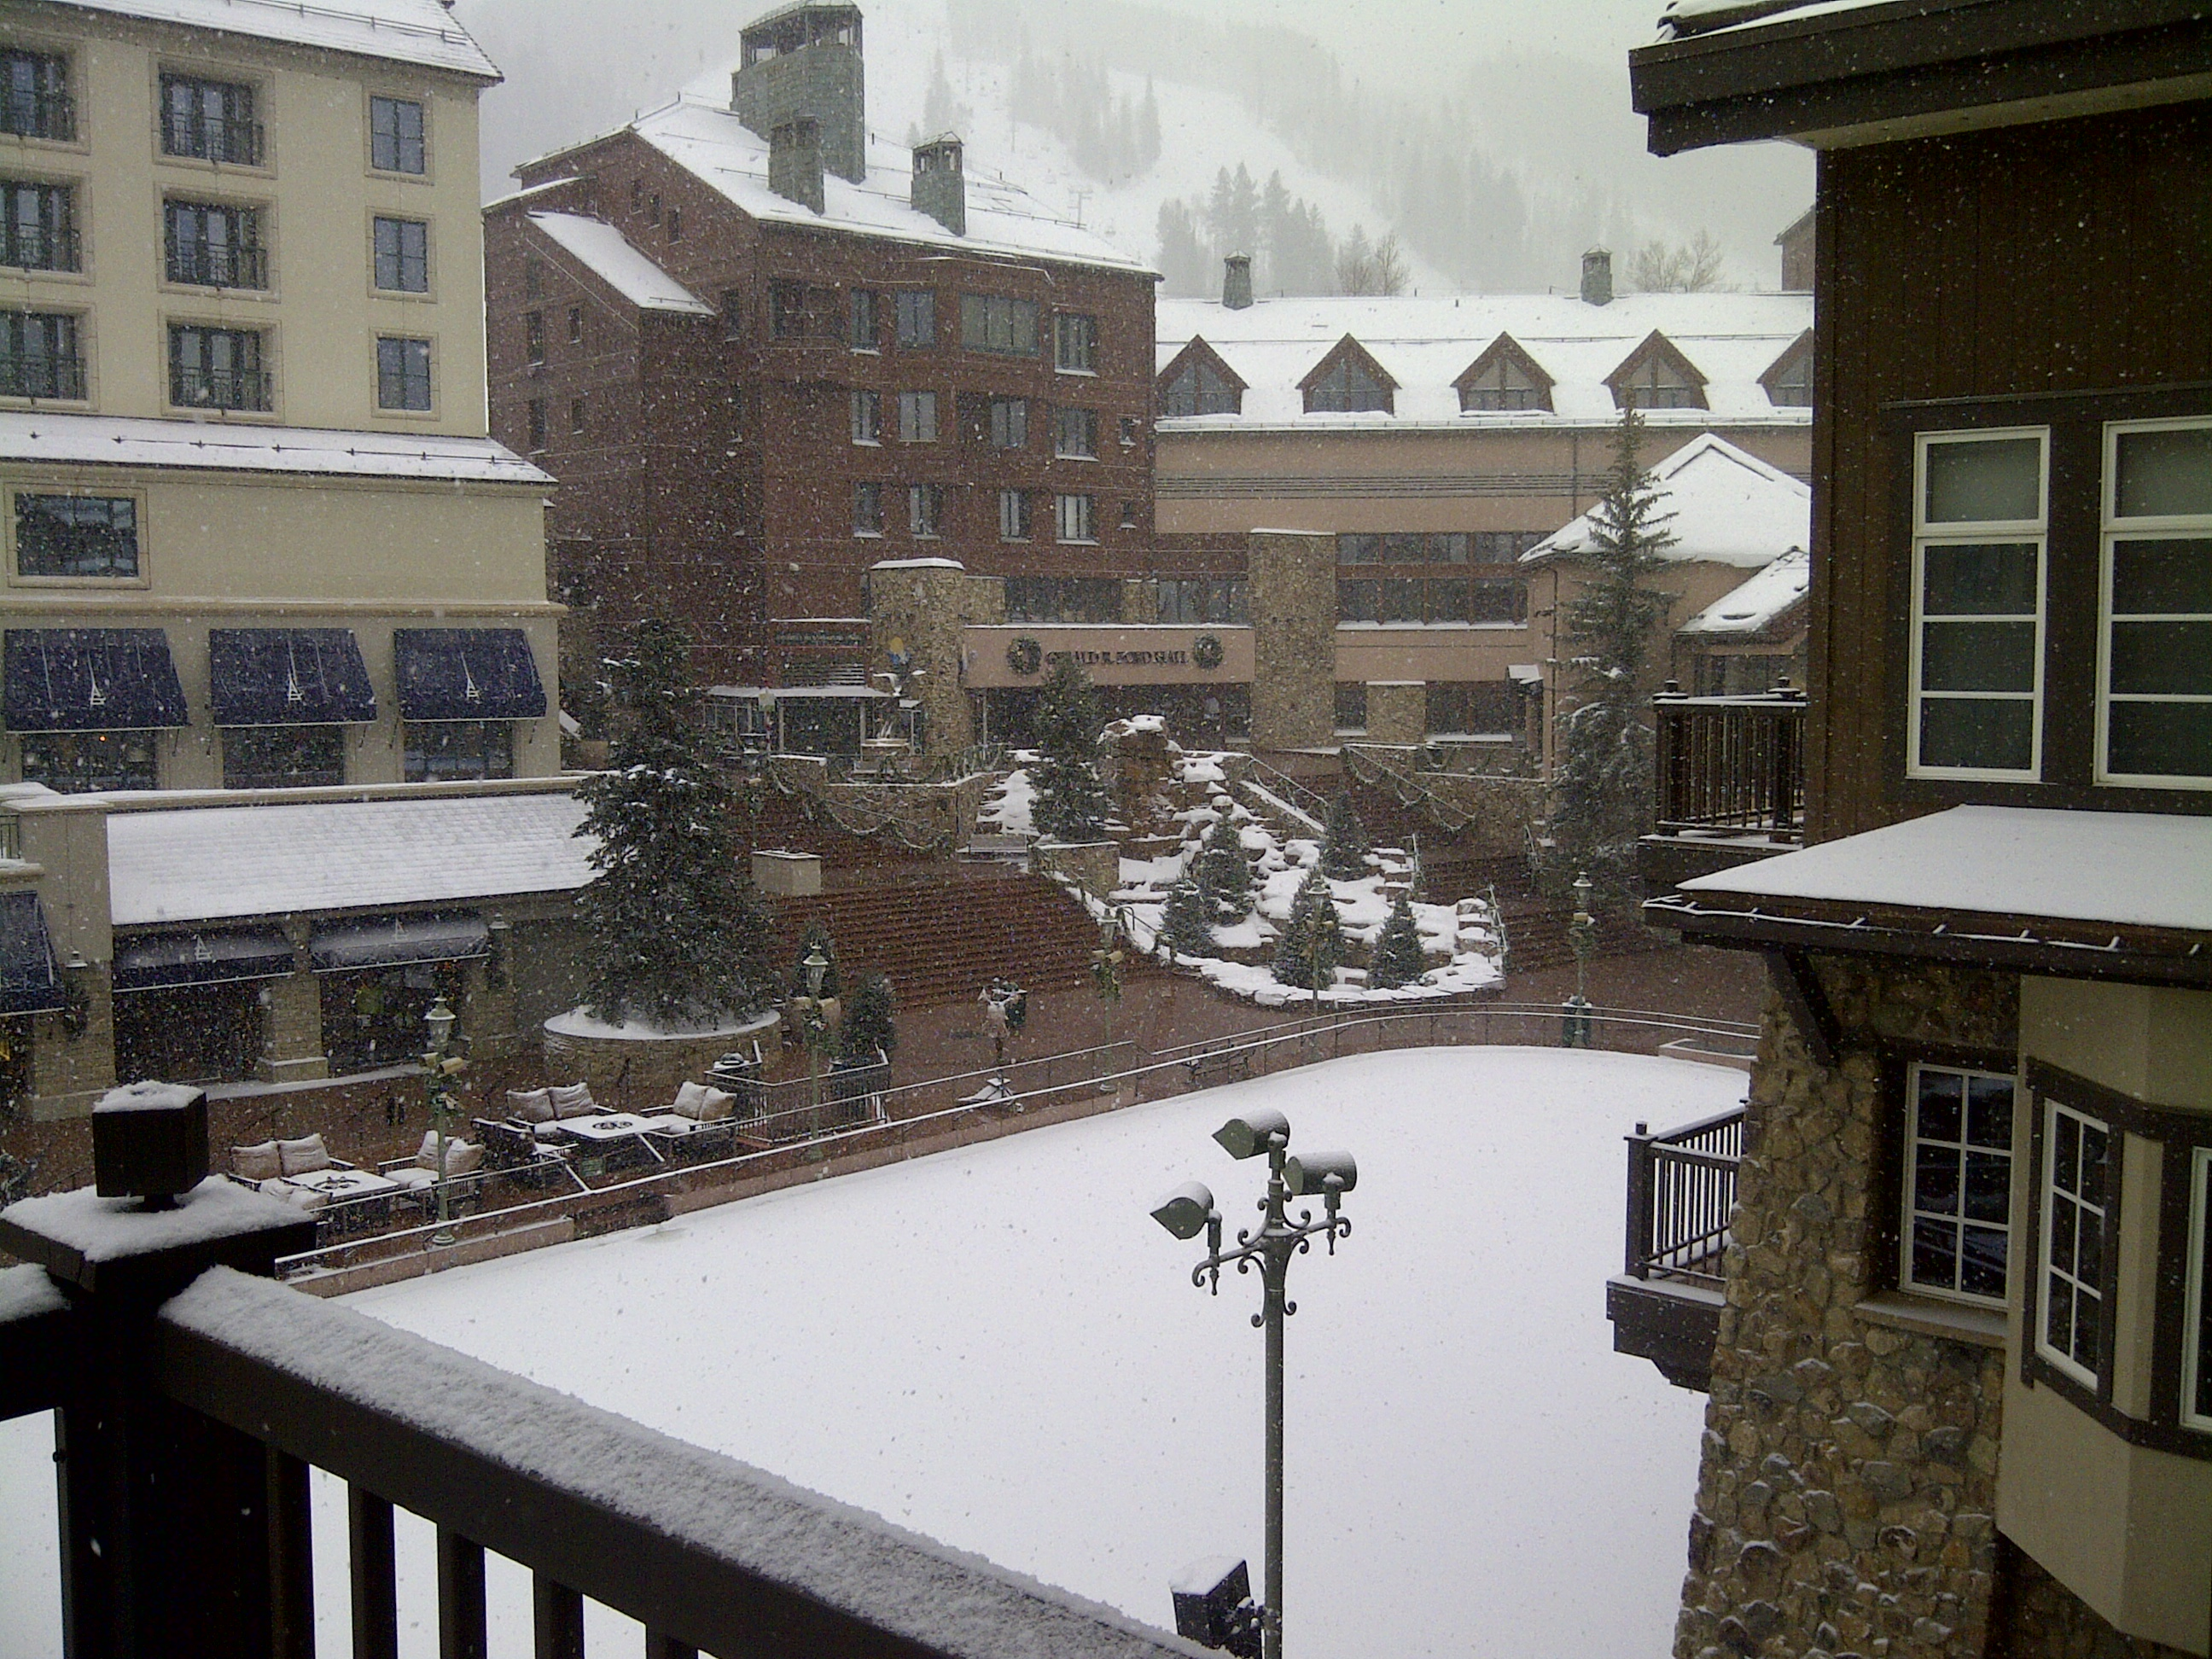 Minturn-Red Cliff-20101211-00006.jpg